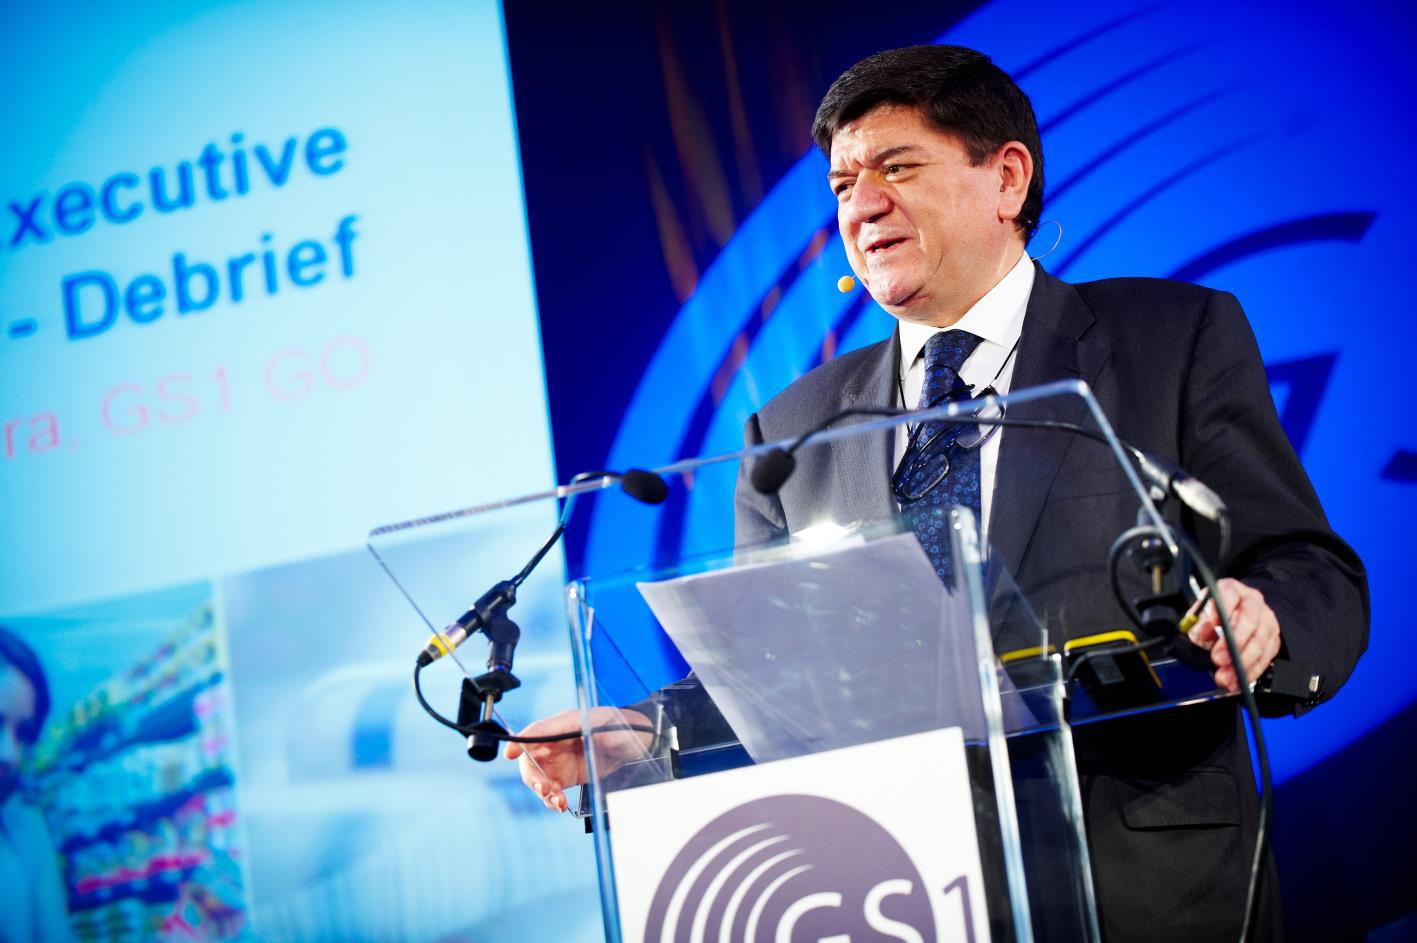 GS1 Joins Advisory Board of the International Chamber of Commerce to support the Digital Standards Initiative